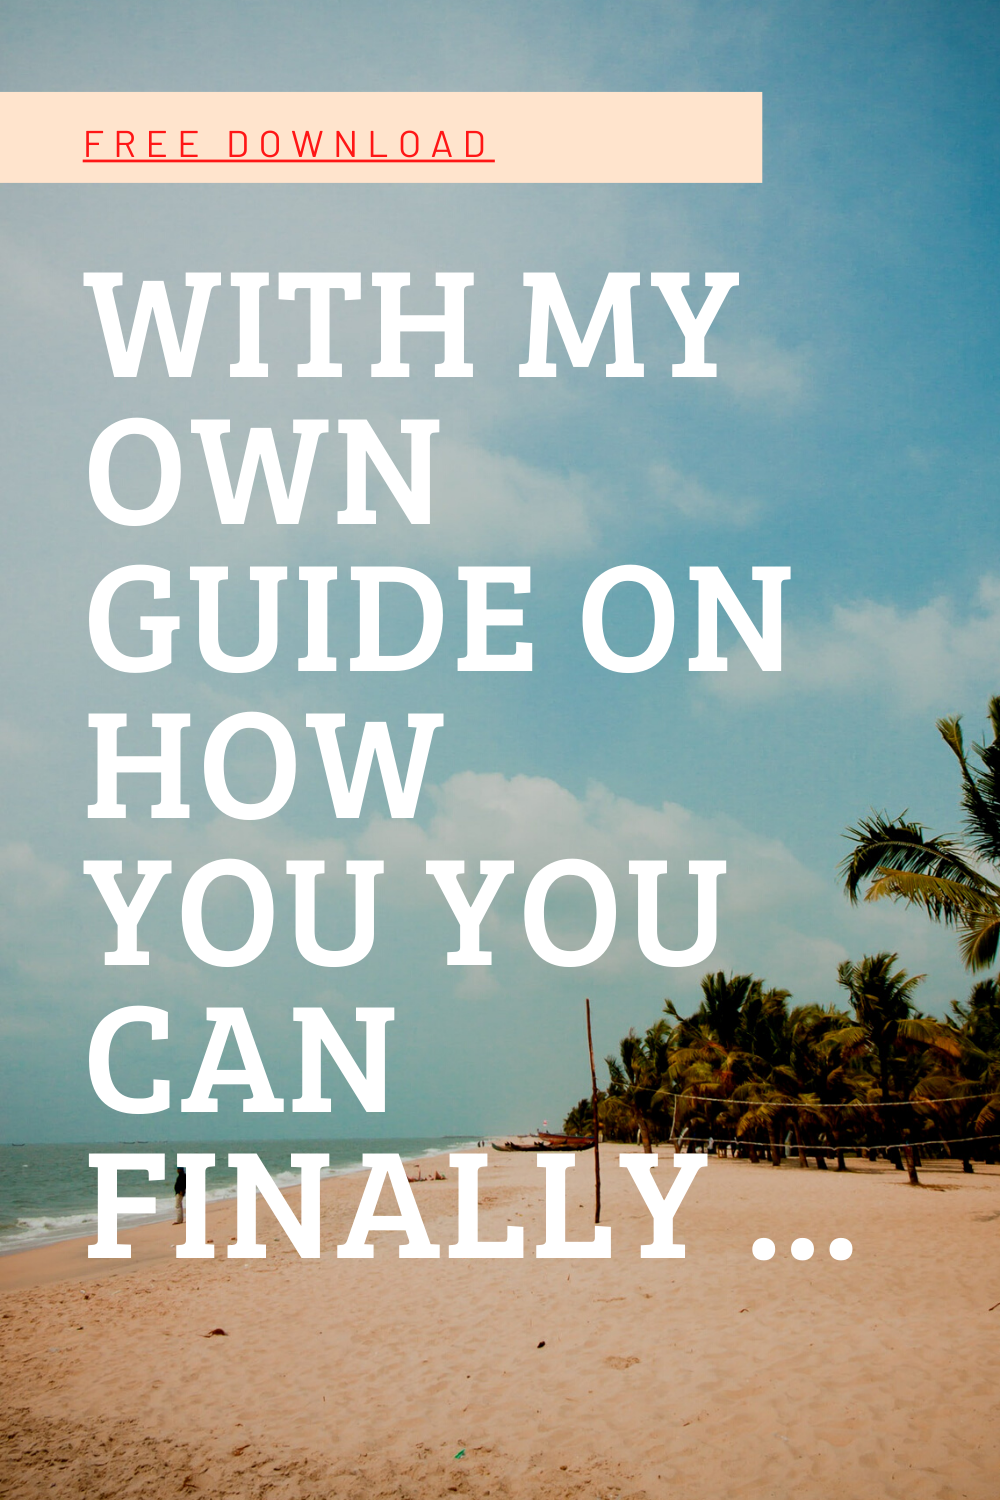 My jaw drops every time I see others just like you pay for outrageously-priced tickets. The good news is, you don't have to spend a fortune to fly any more. At last, the shocking truth is revealed in my explosive guide on how you can finally travel in luxury at mindboggling bargains! #budgettravel #freetravel #backpacking #howtosave #savemoneyontravel #travelcheap #cheaptravel #traveltheworld #travelhacks